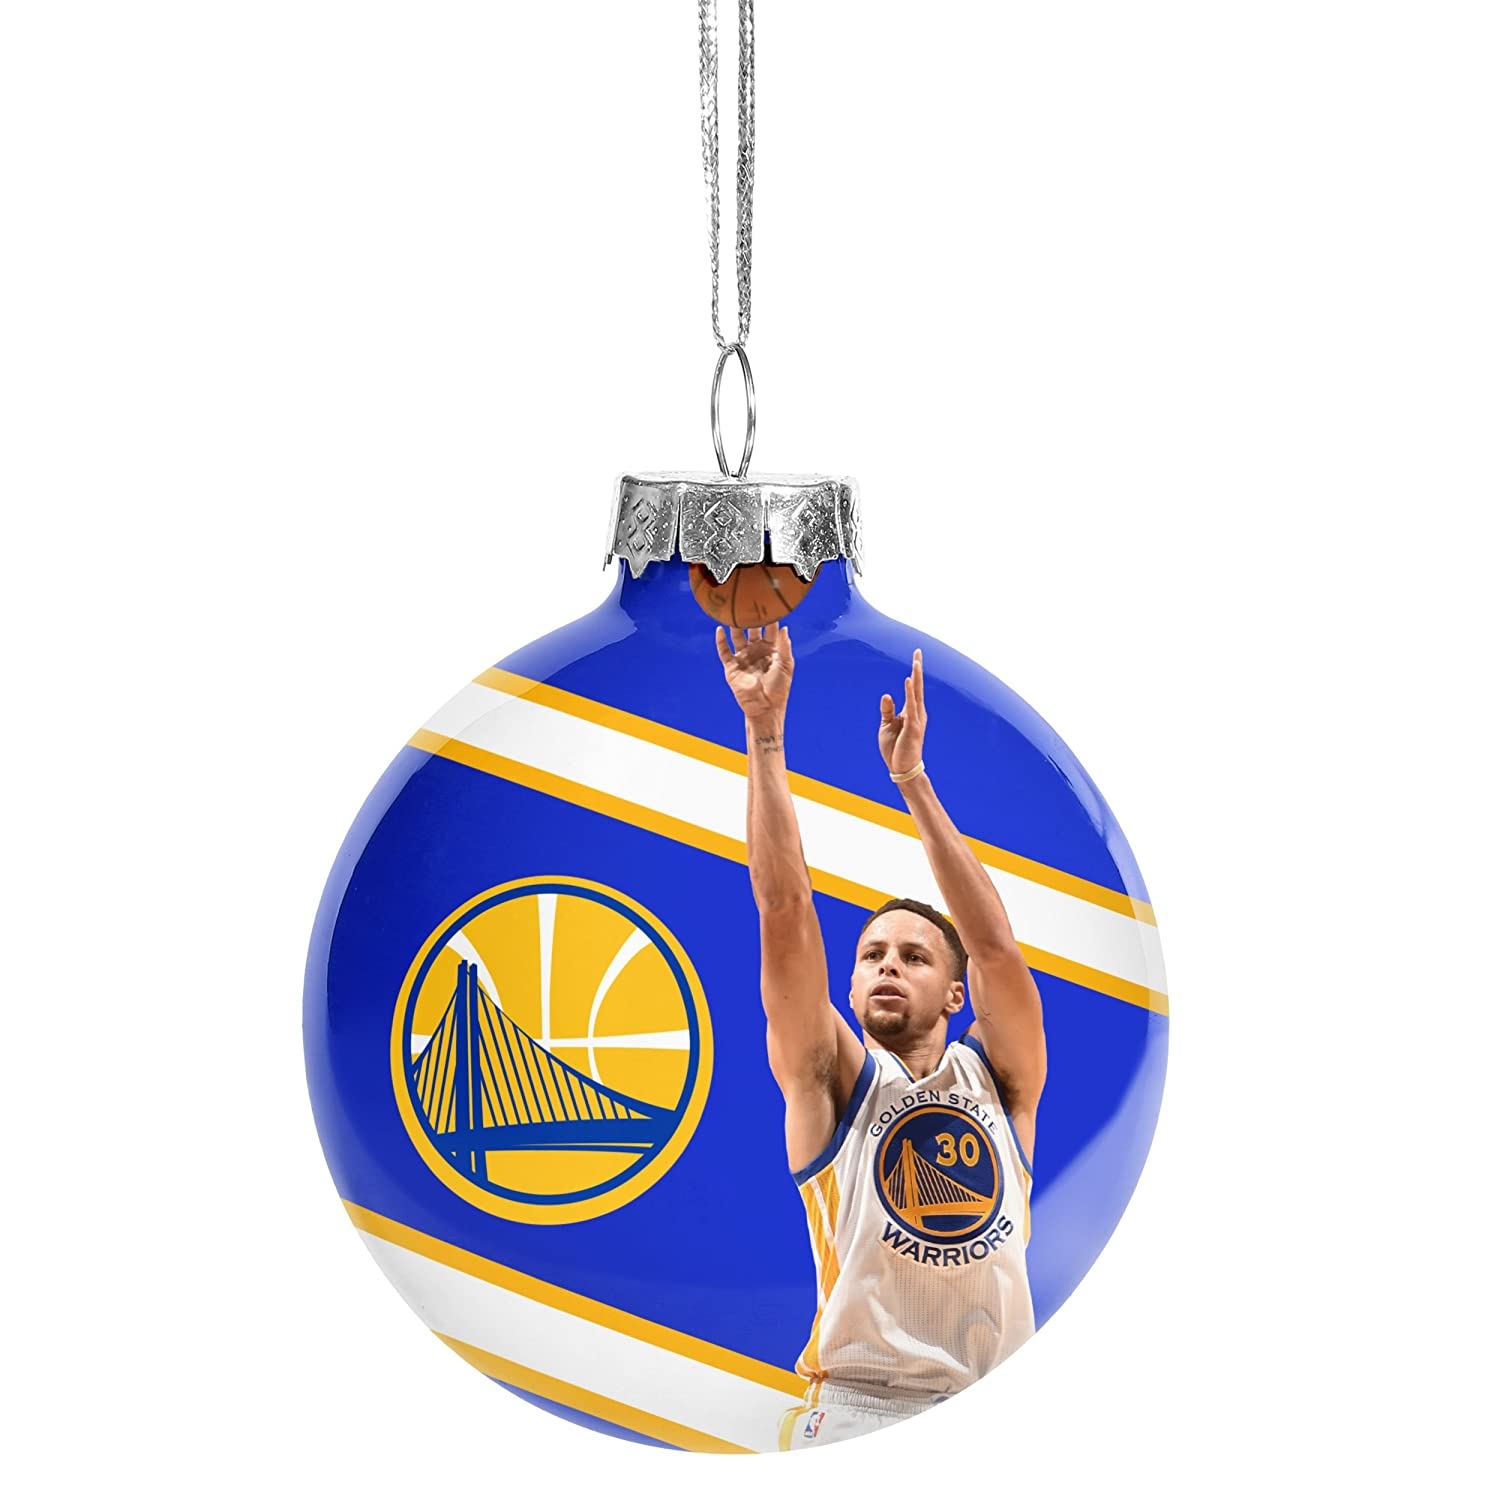 Golden State Warriors Christmas Holiday Glass Ball Image Ornament Stephen Curry #30